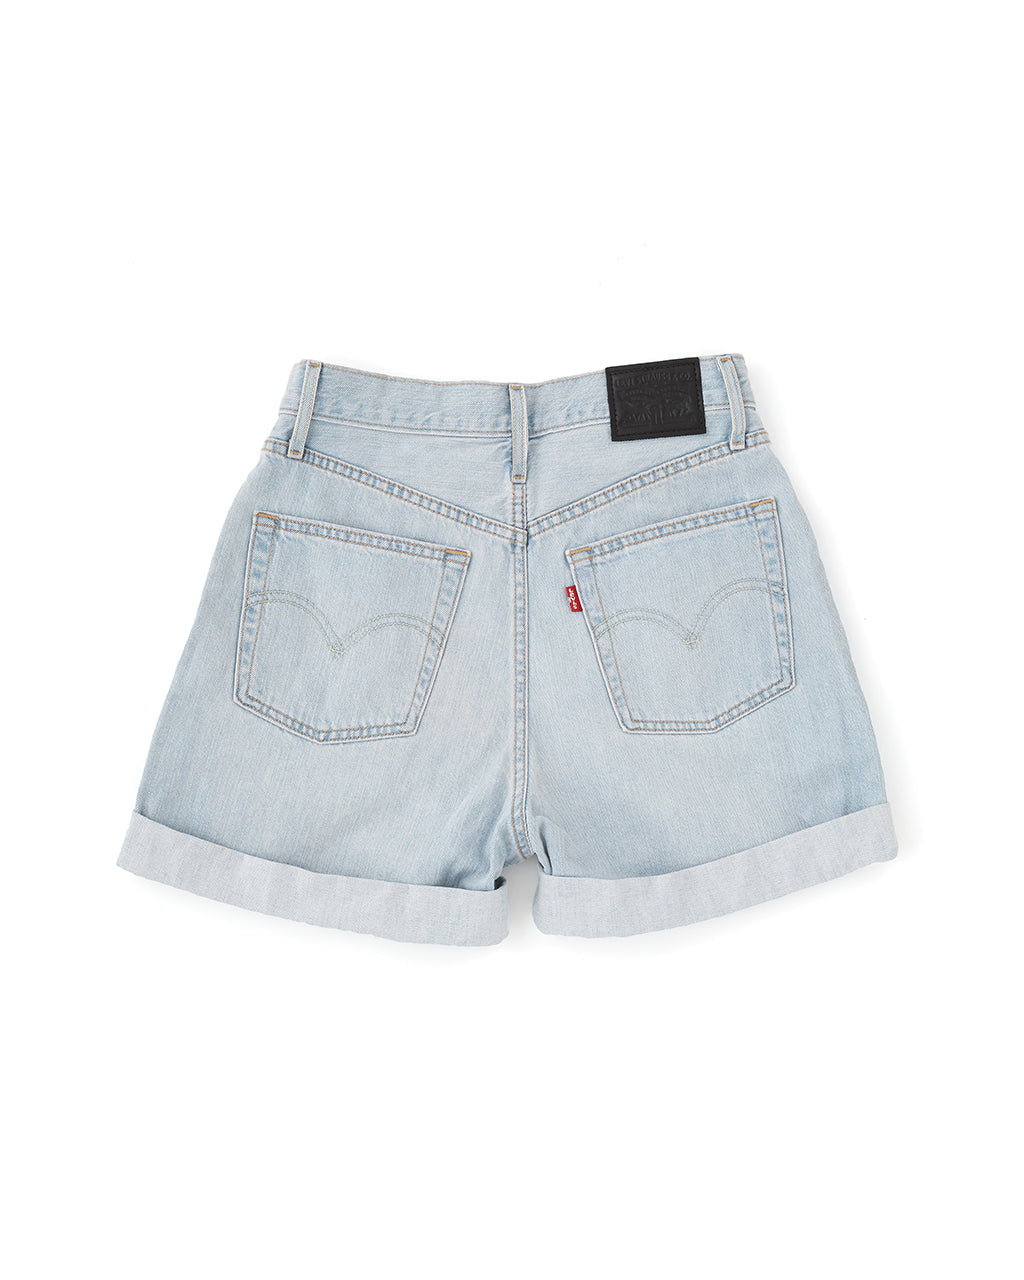 ff96c532 Rugrat Shorts by levi's - shorts - ban.do